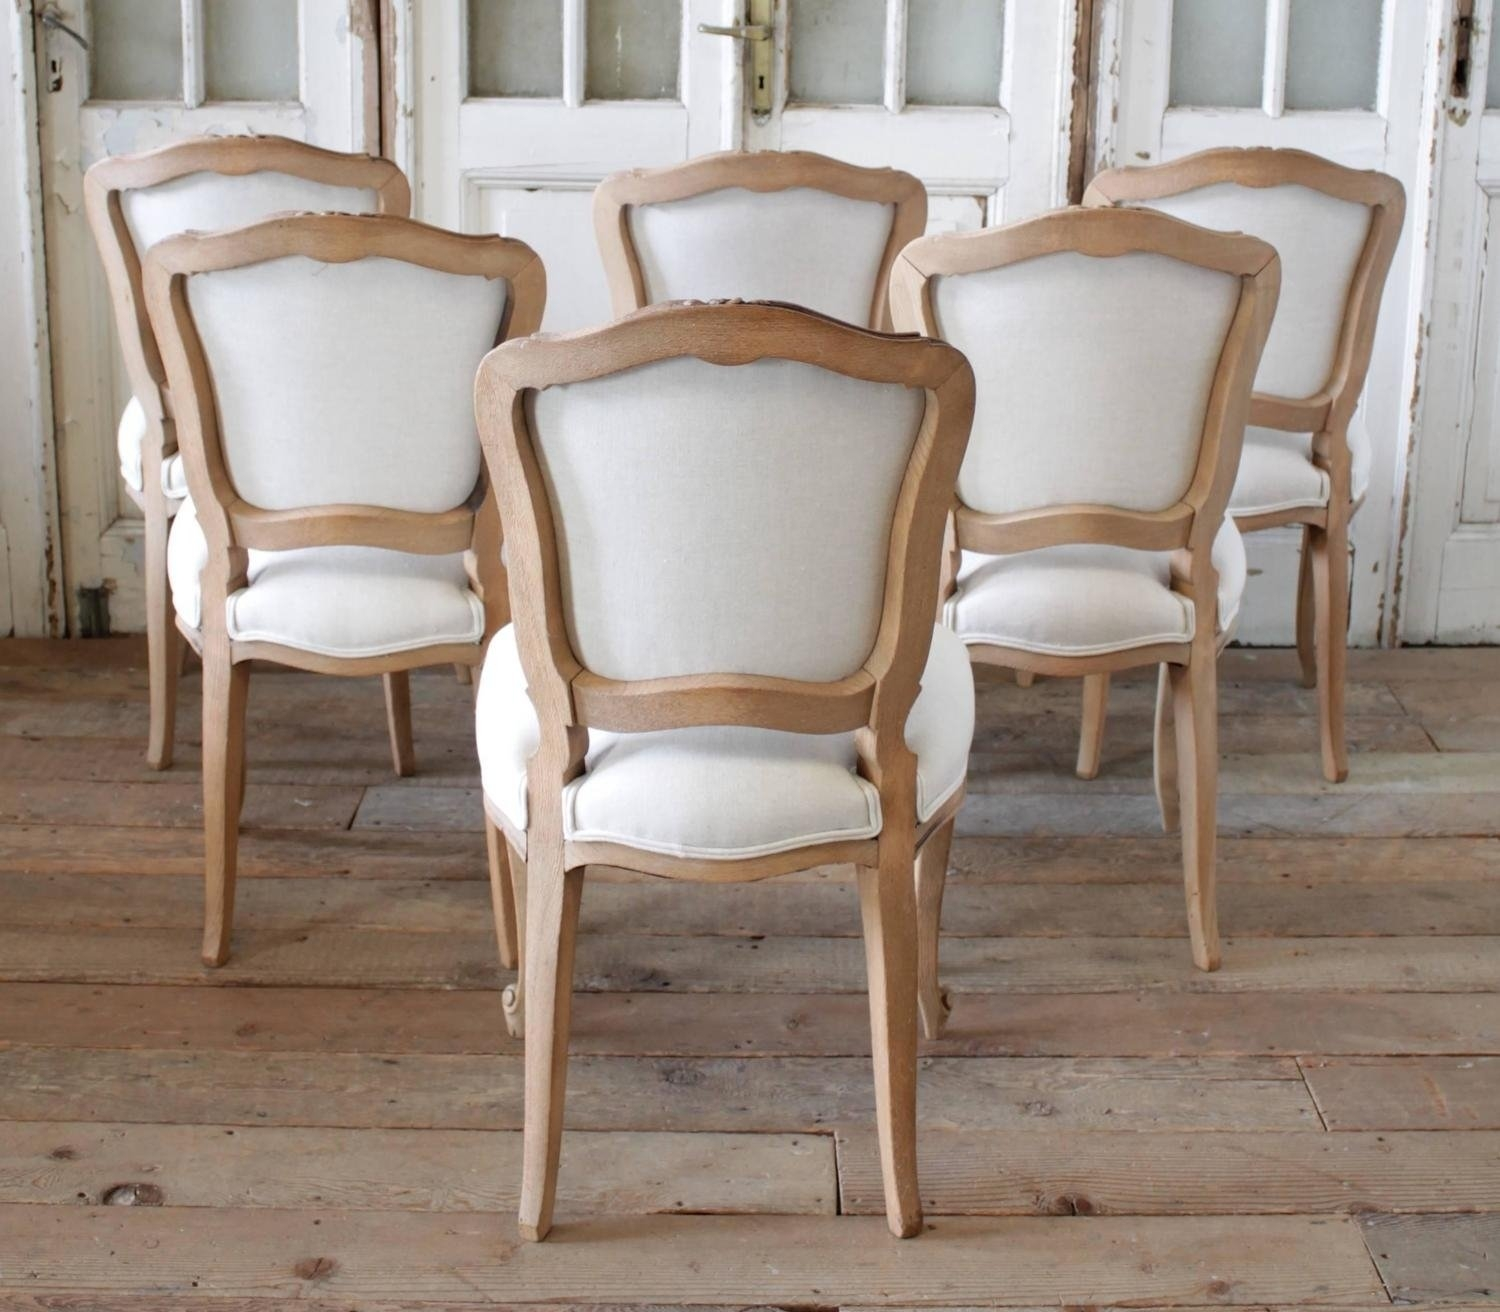 French Country Chairs You Ll Love In 2021 Visualhunt